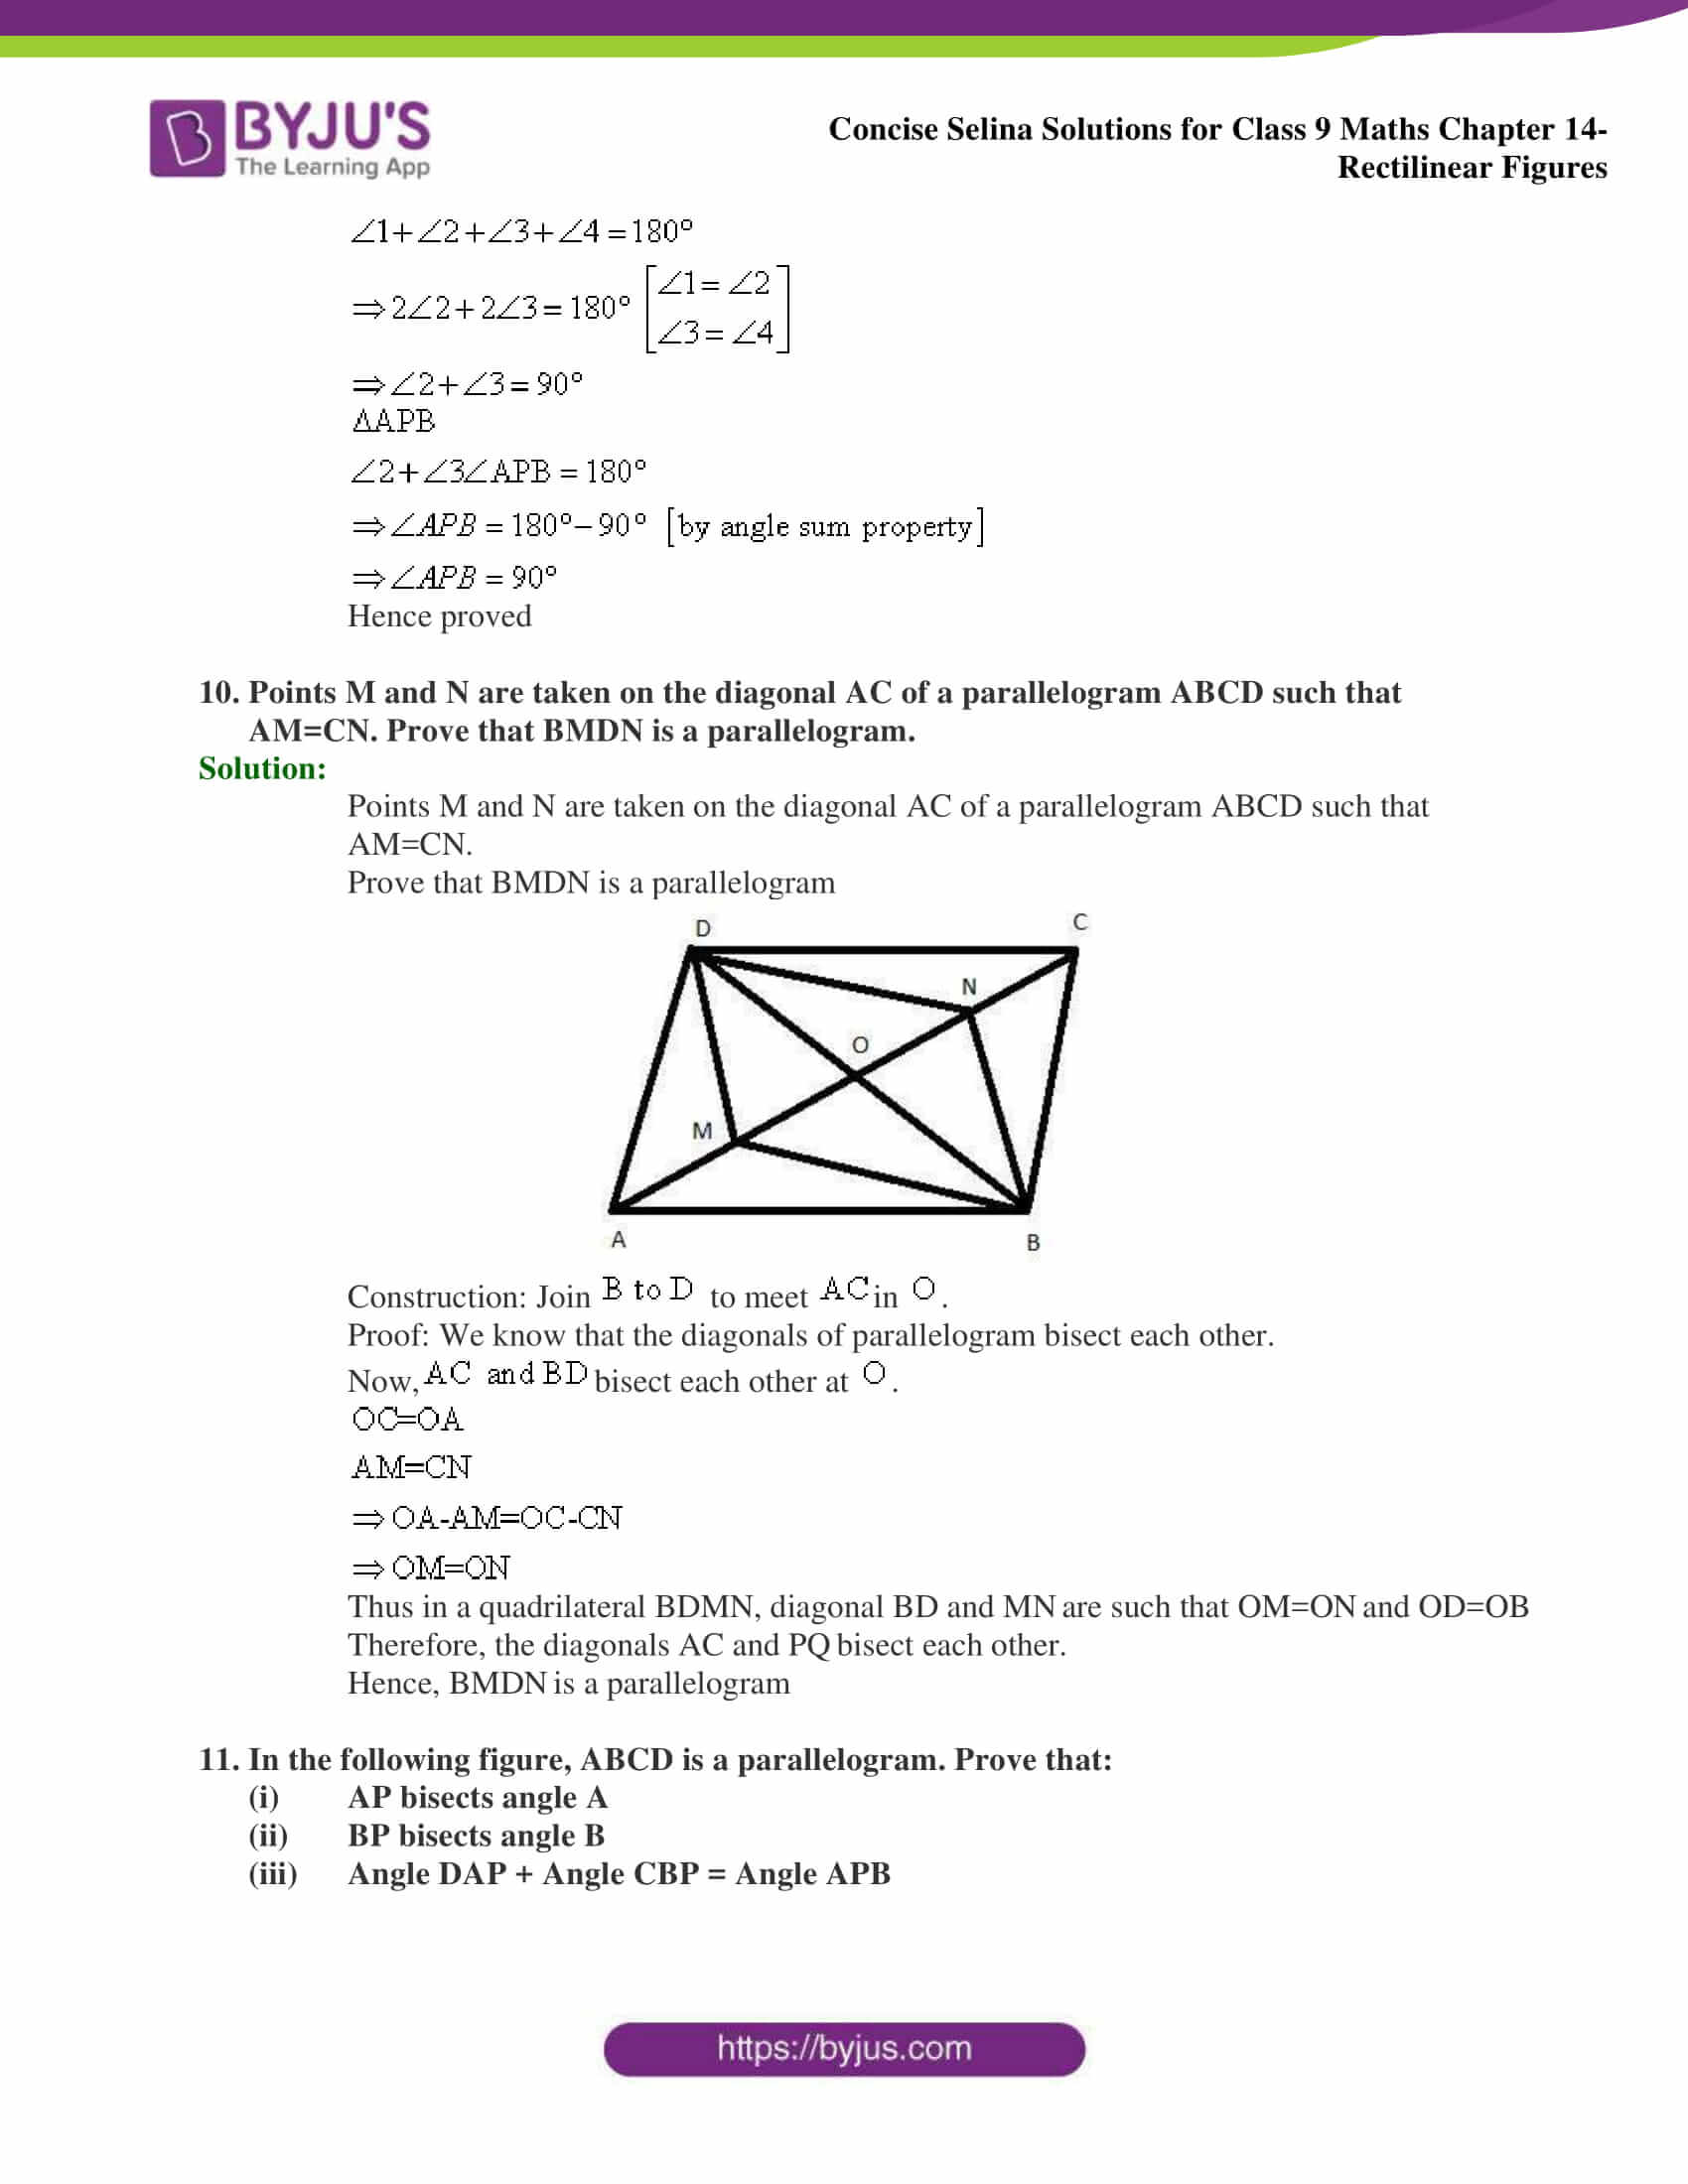 selina Solutions for Class 9 Maths Chapter 14 part 25